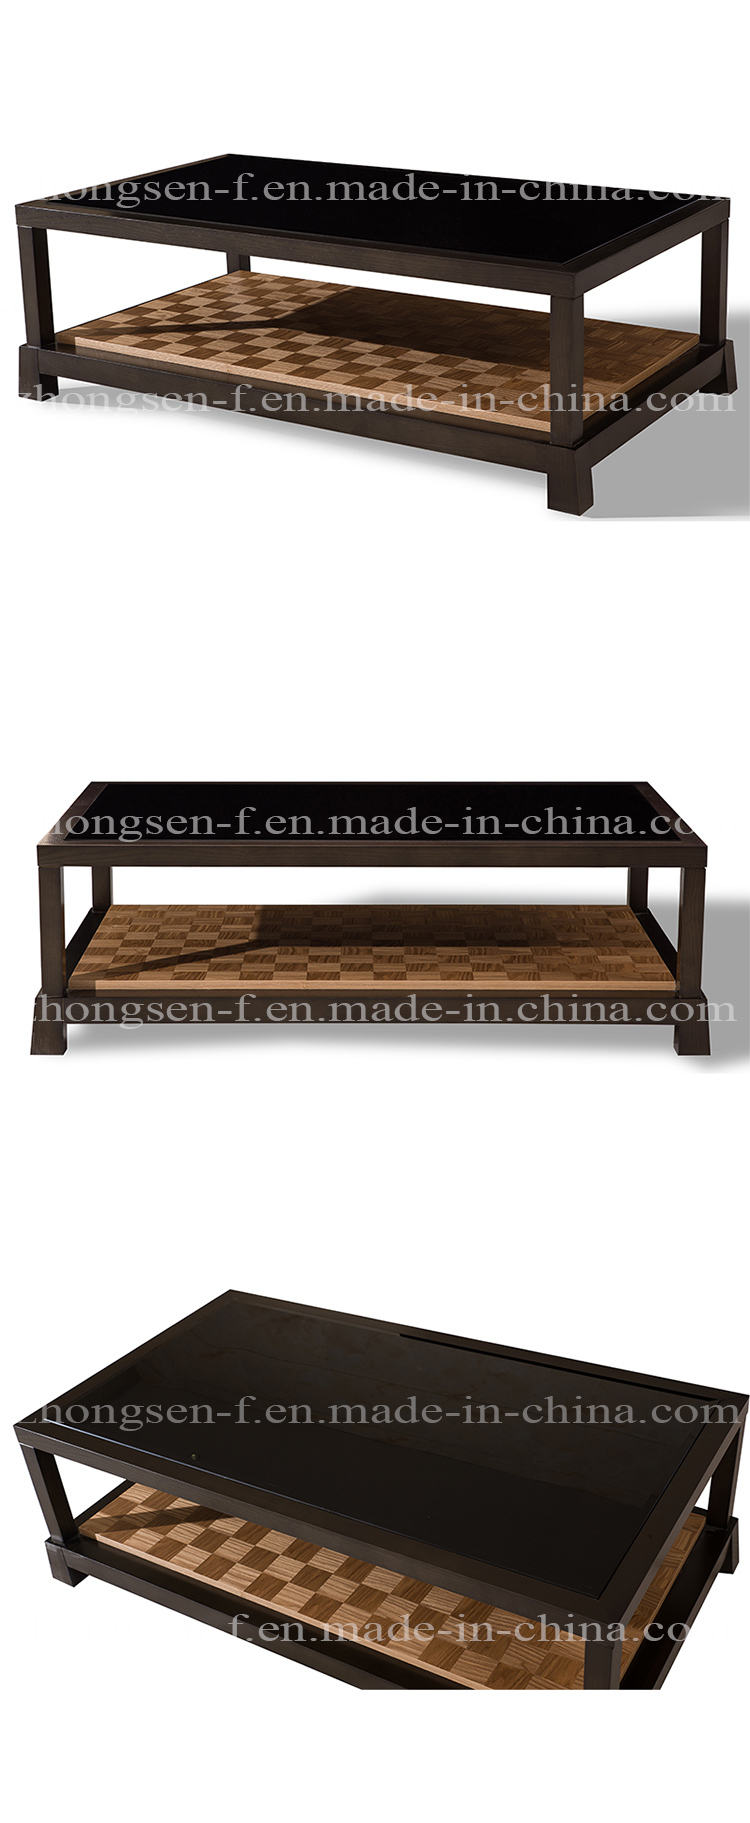 Modern Furniture Square Tea Table Wooden Coffee Table for Hotel